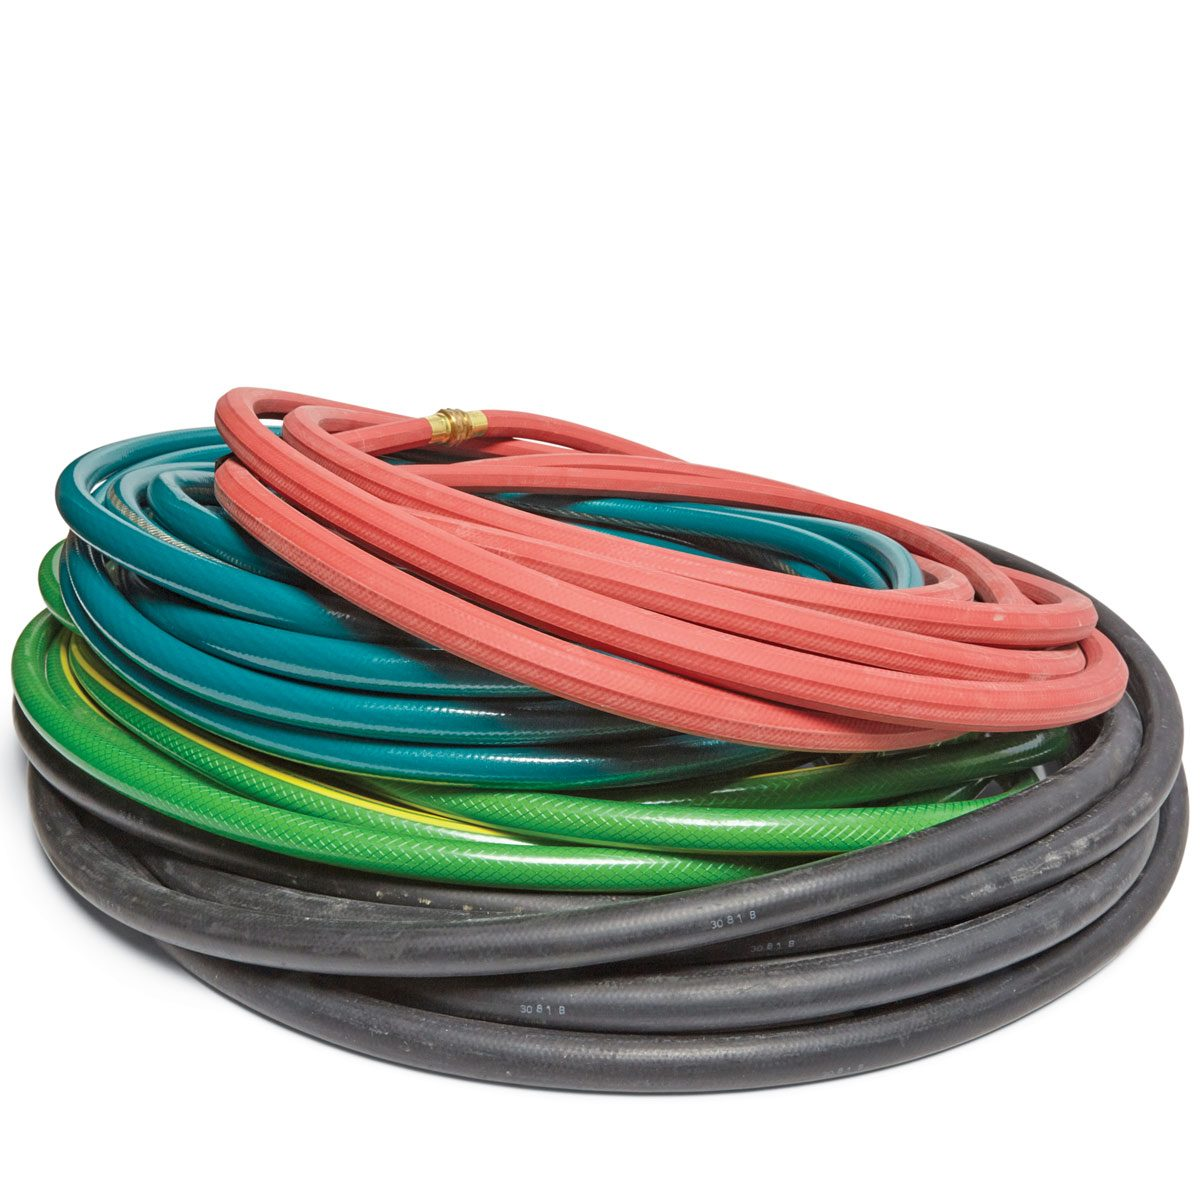 Drain Garden Hoses or Waste Money on Replacements